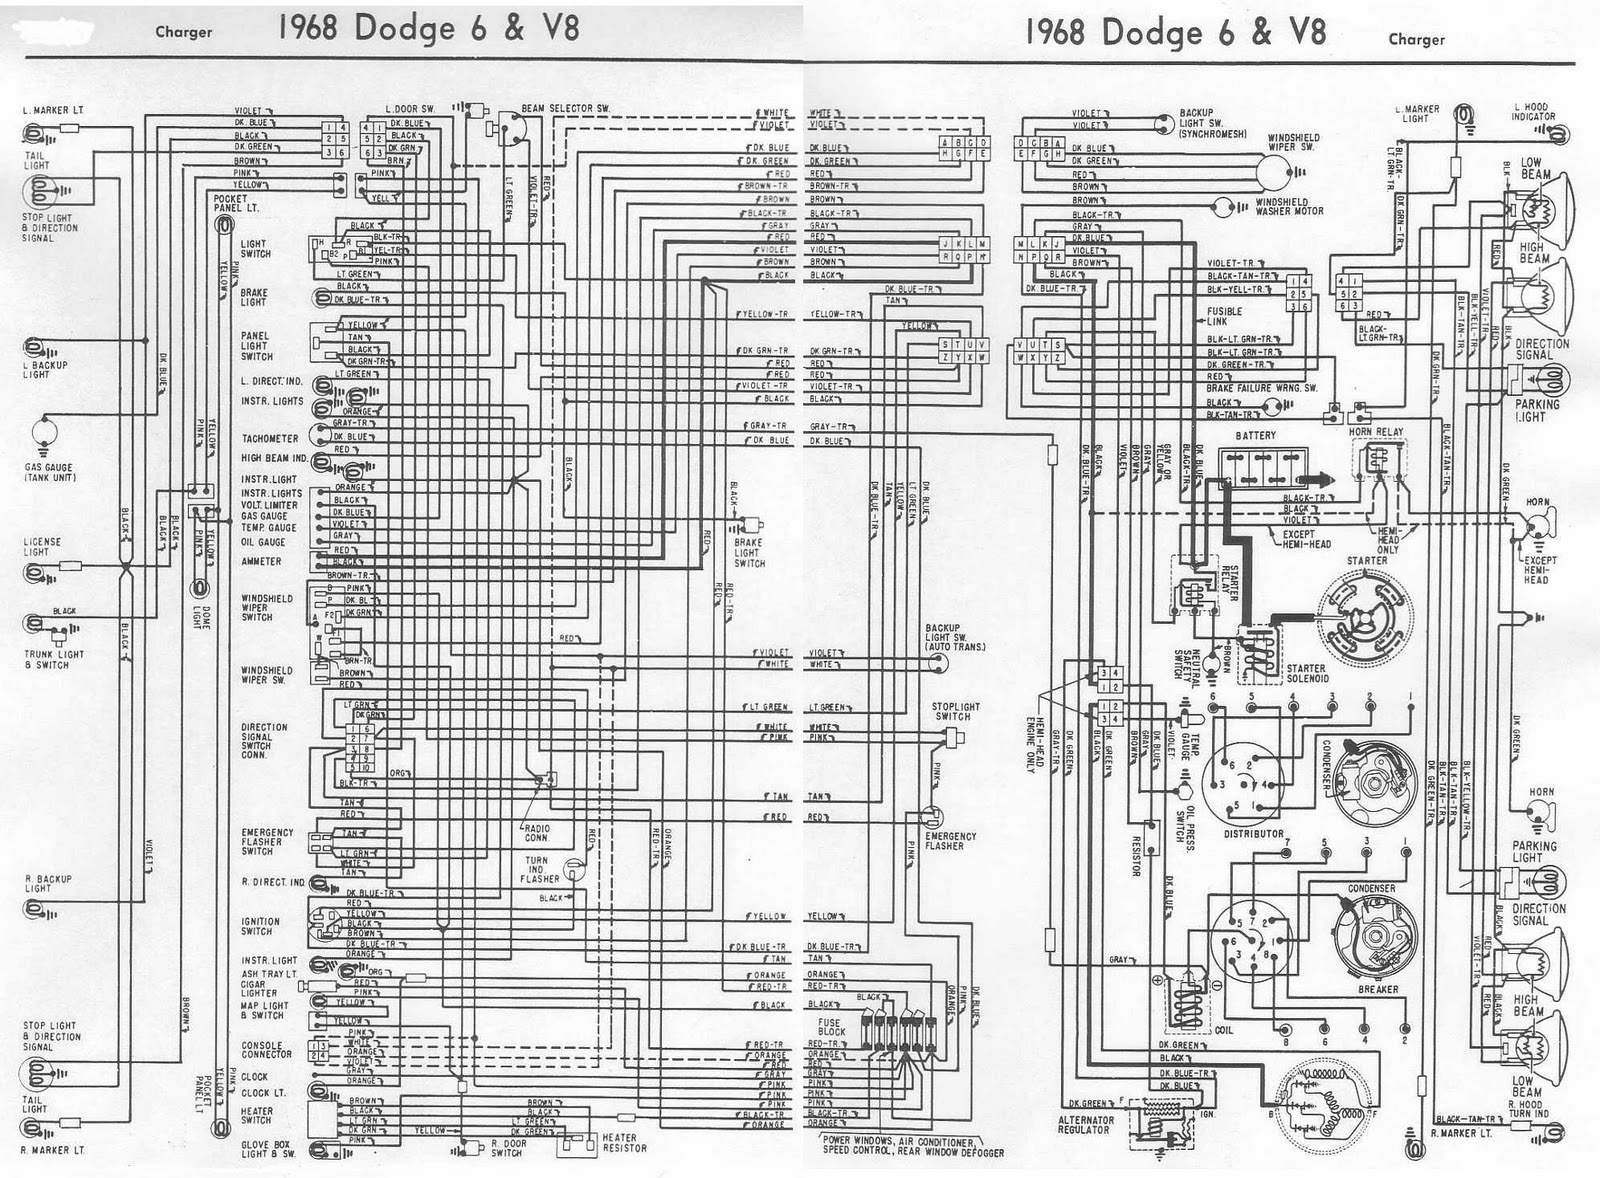 Dodge+Charger+1968+6+and+V8+Complete+Electrical+Wiring+Diagram dodge charger 1968 6 and v8 complete electrical wiring diagram 1968 corvette wiring diagram at soozxer.org